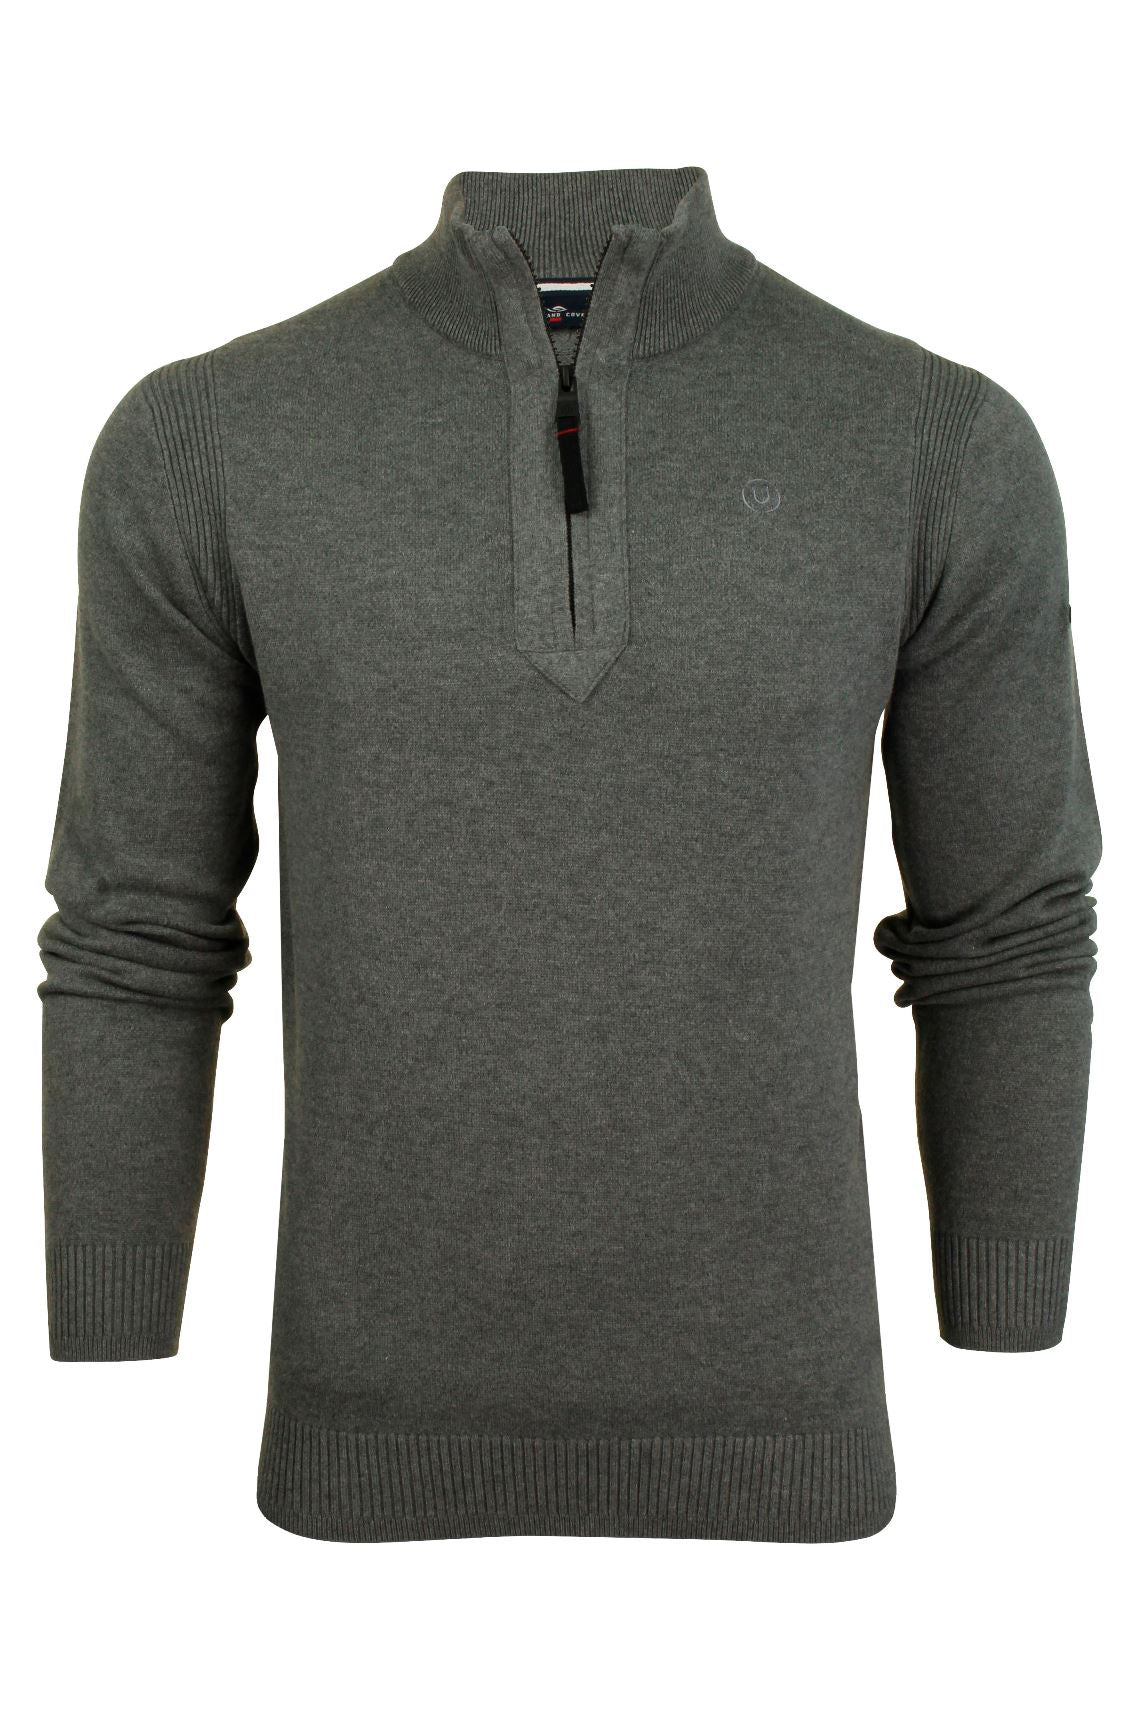 Mens 1/4 Zip Neck Jumper by Duck and Cover 'Latitude'-2